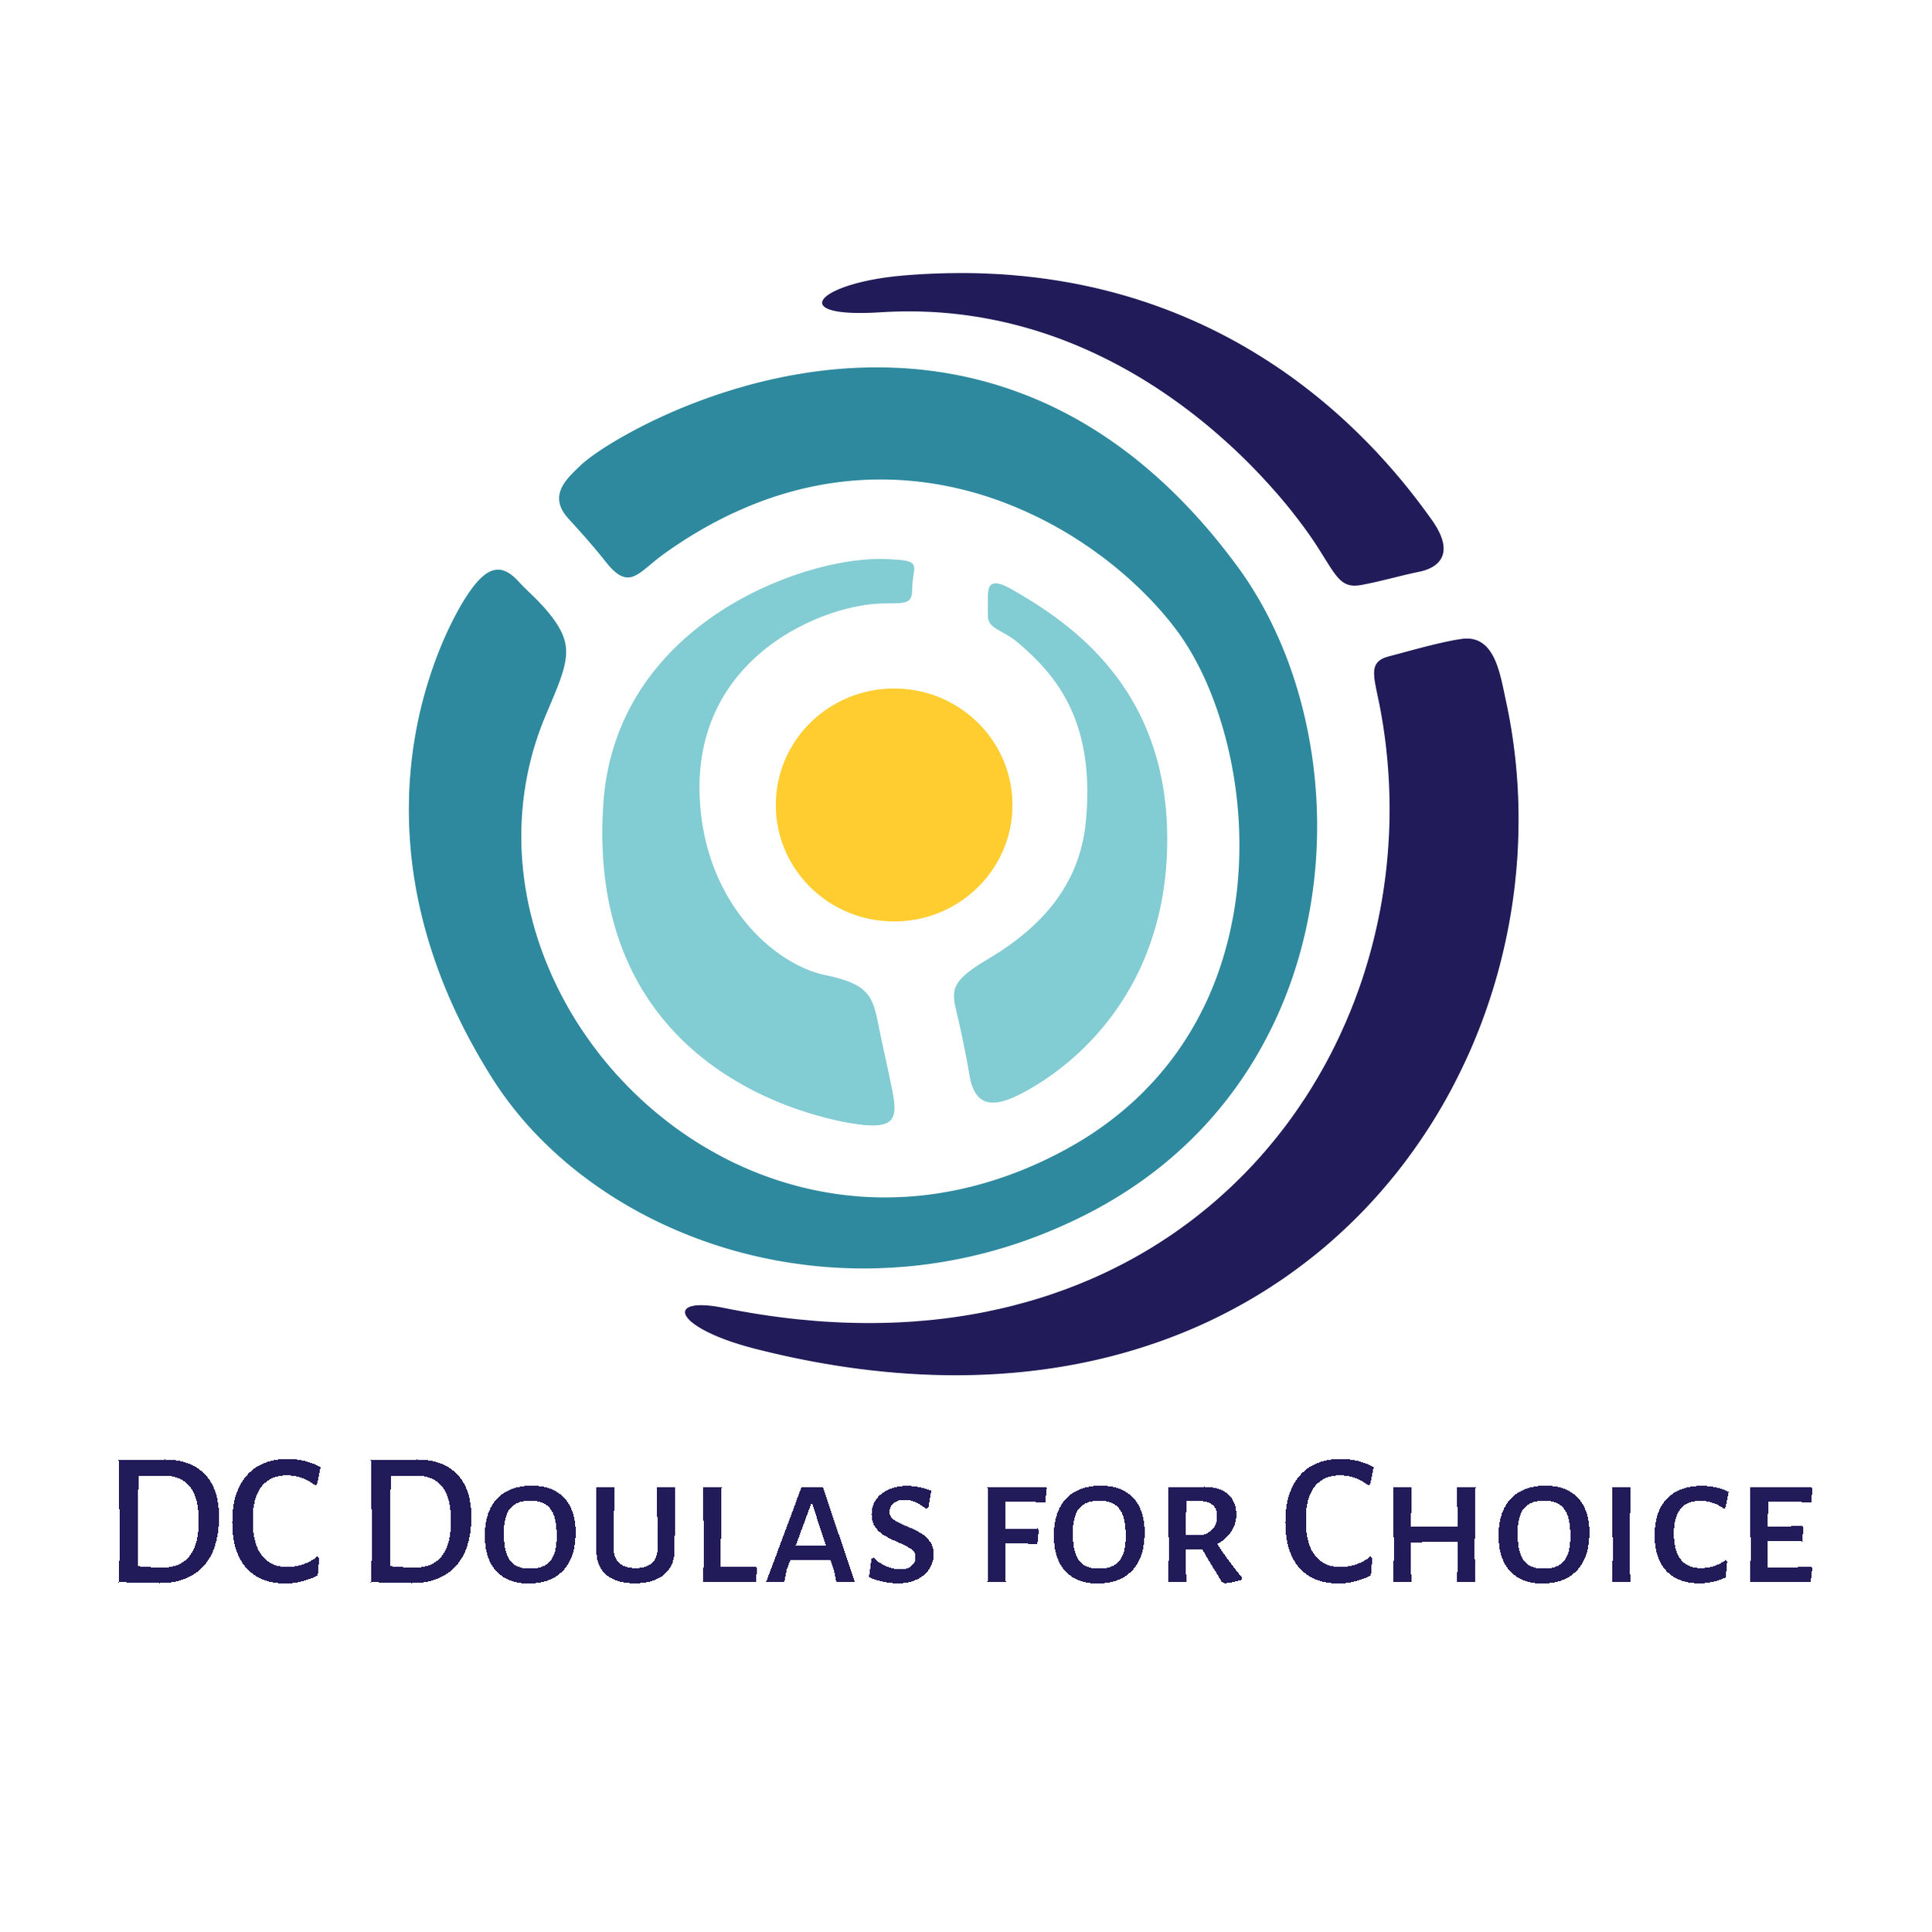 DC Doulas for Choice